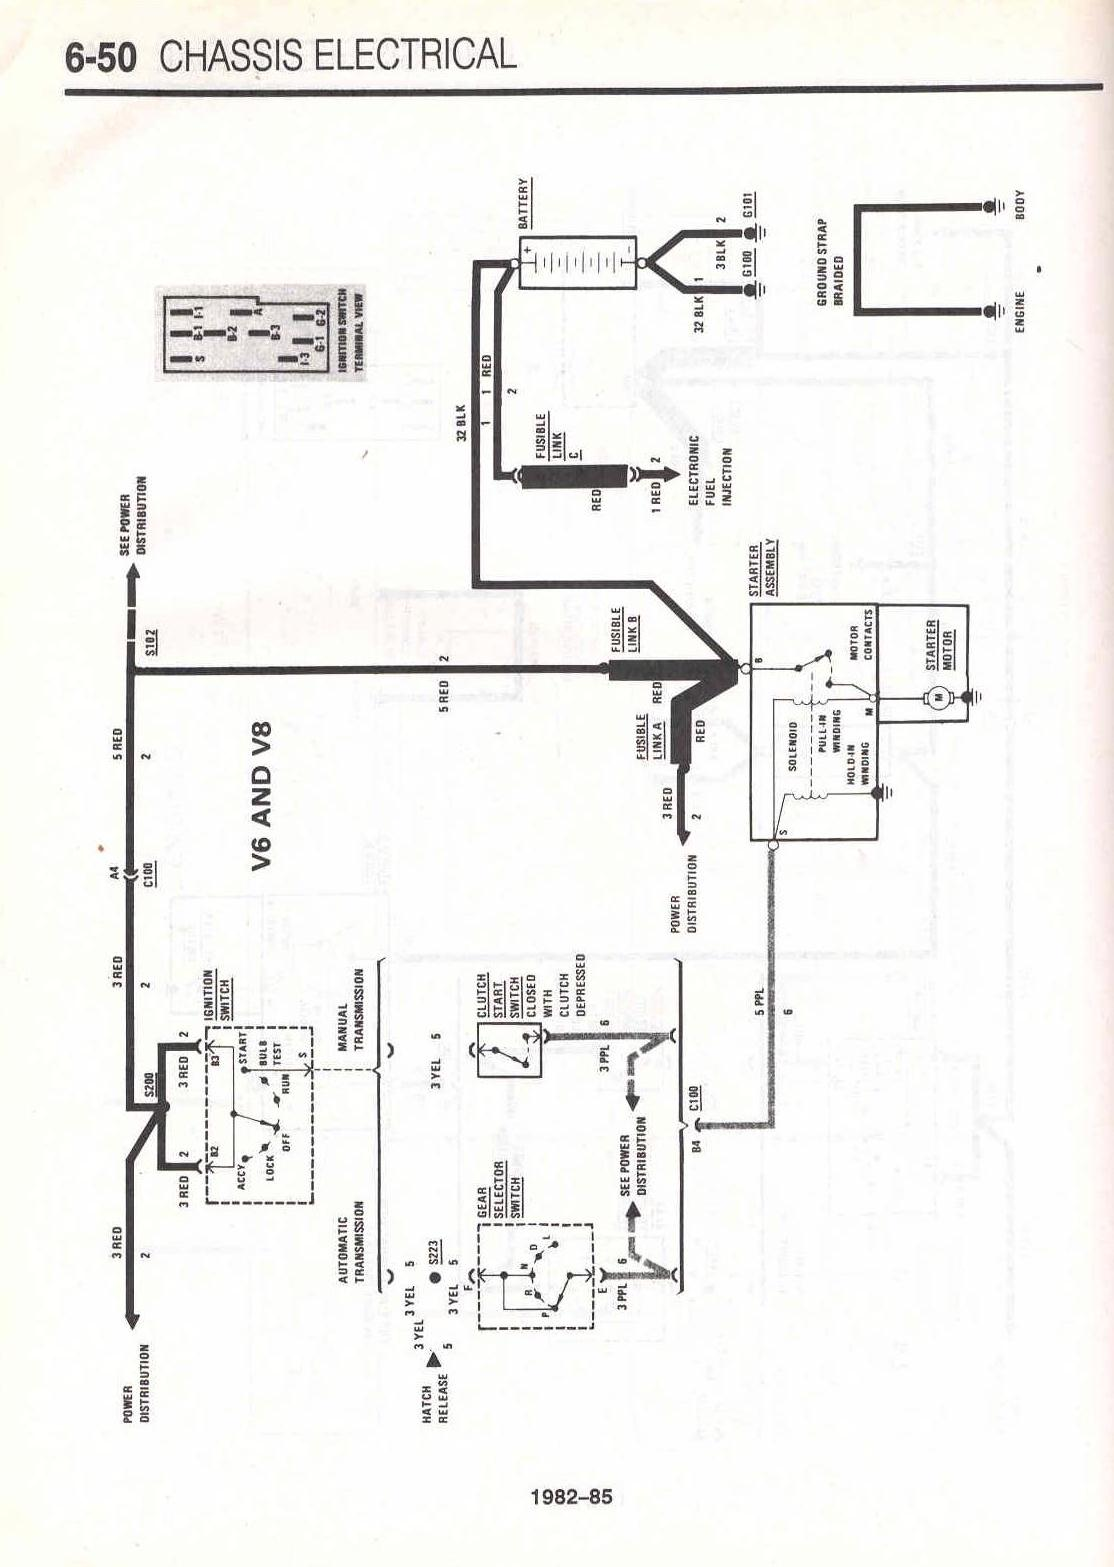 Perfect Dodge 318 Ignition Wiring Diagram 1988 Sketch - Wiring ...